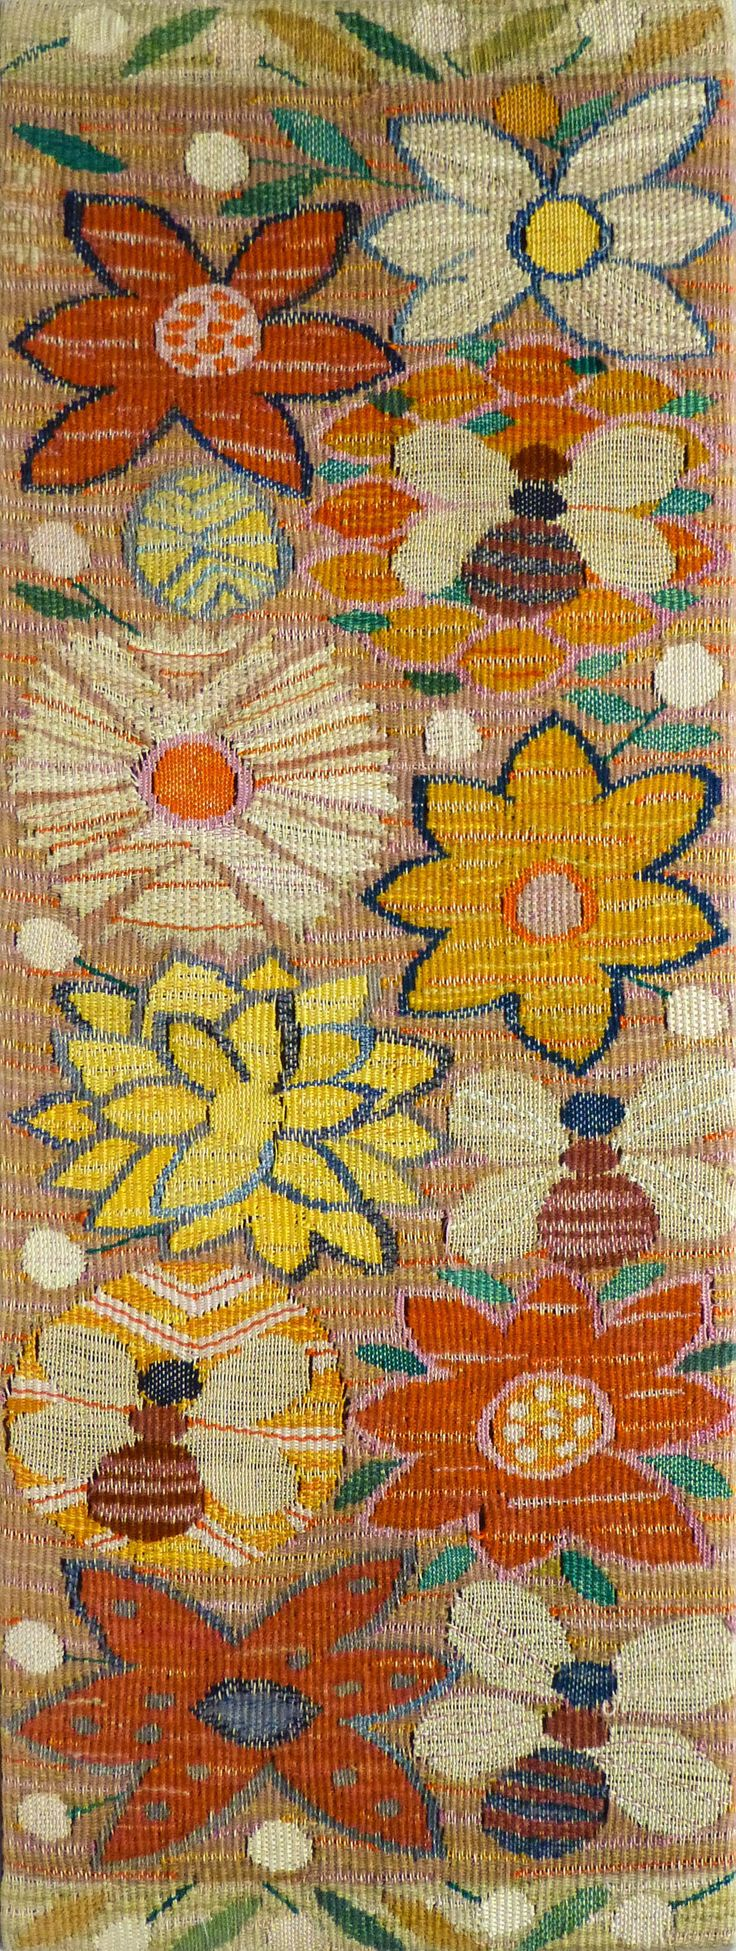 Bee & Butterfly Weaving | From a unique collection of more art at https://www.1stdibs.com/art/more-art/